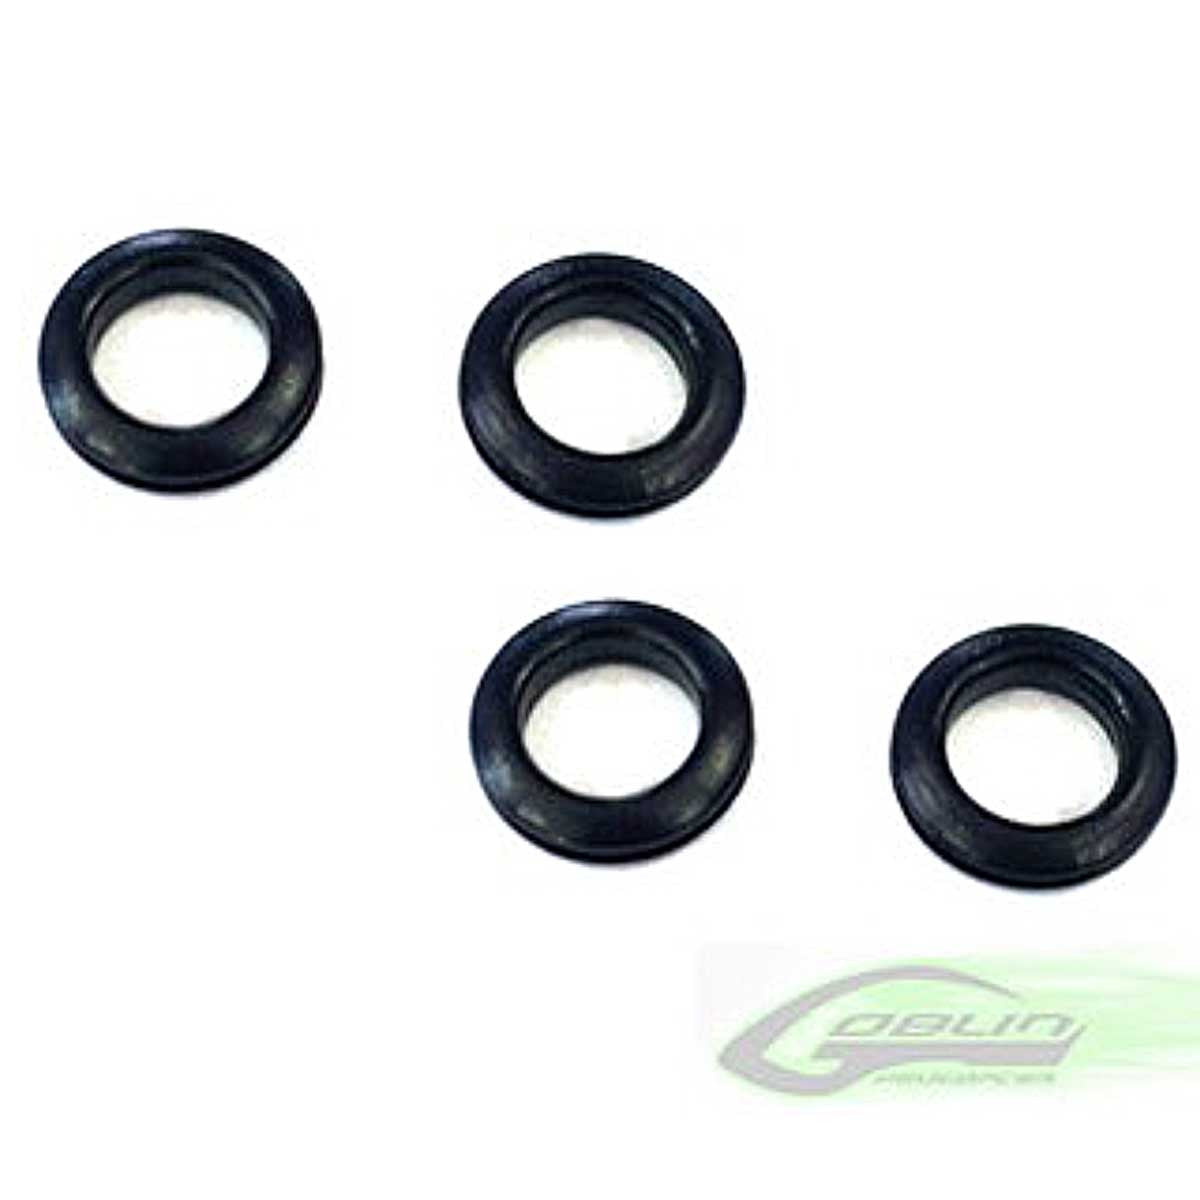 SAB Canopy grommet (4pcs) - Goblin 630/700/770-Goblin Parts-Helilids RC Hobbies